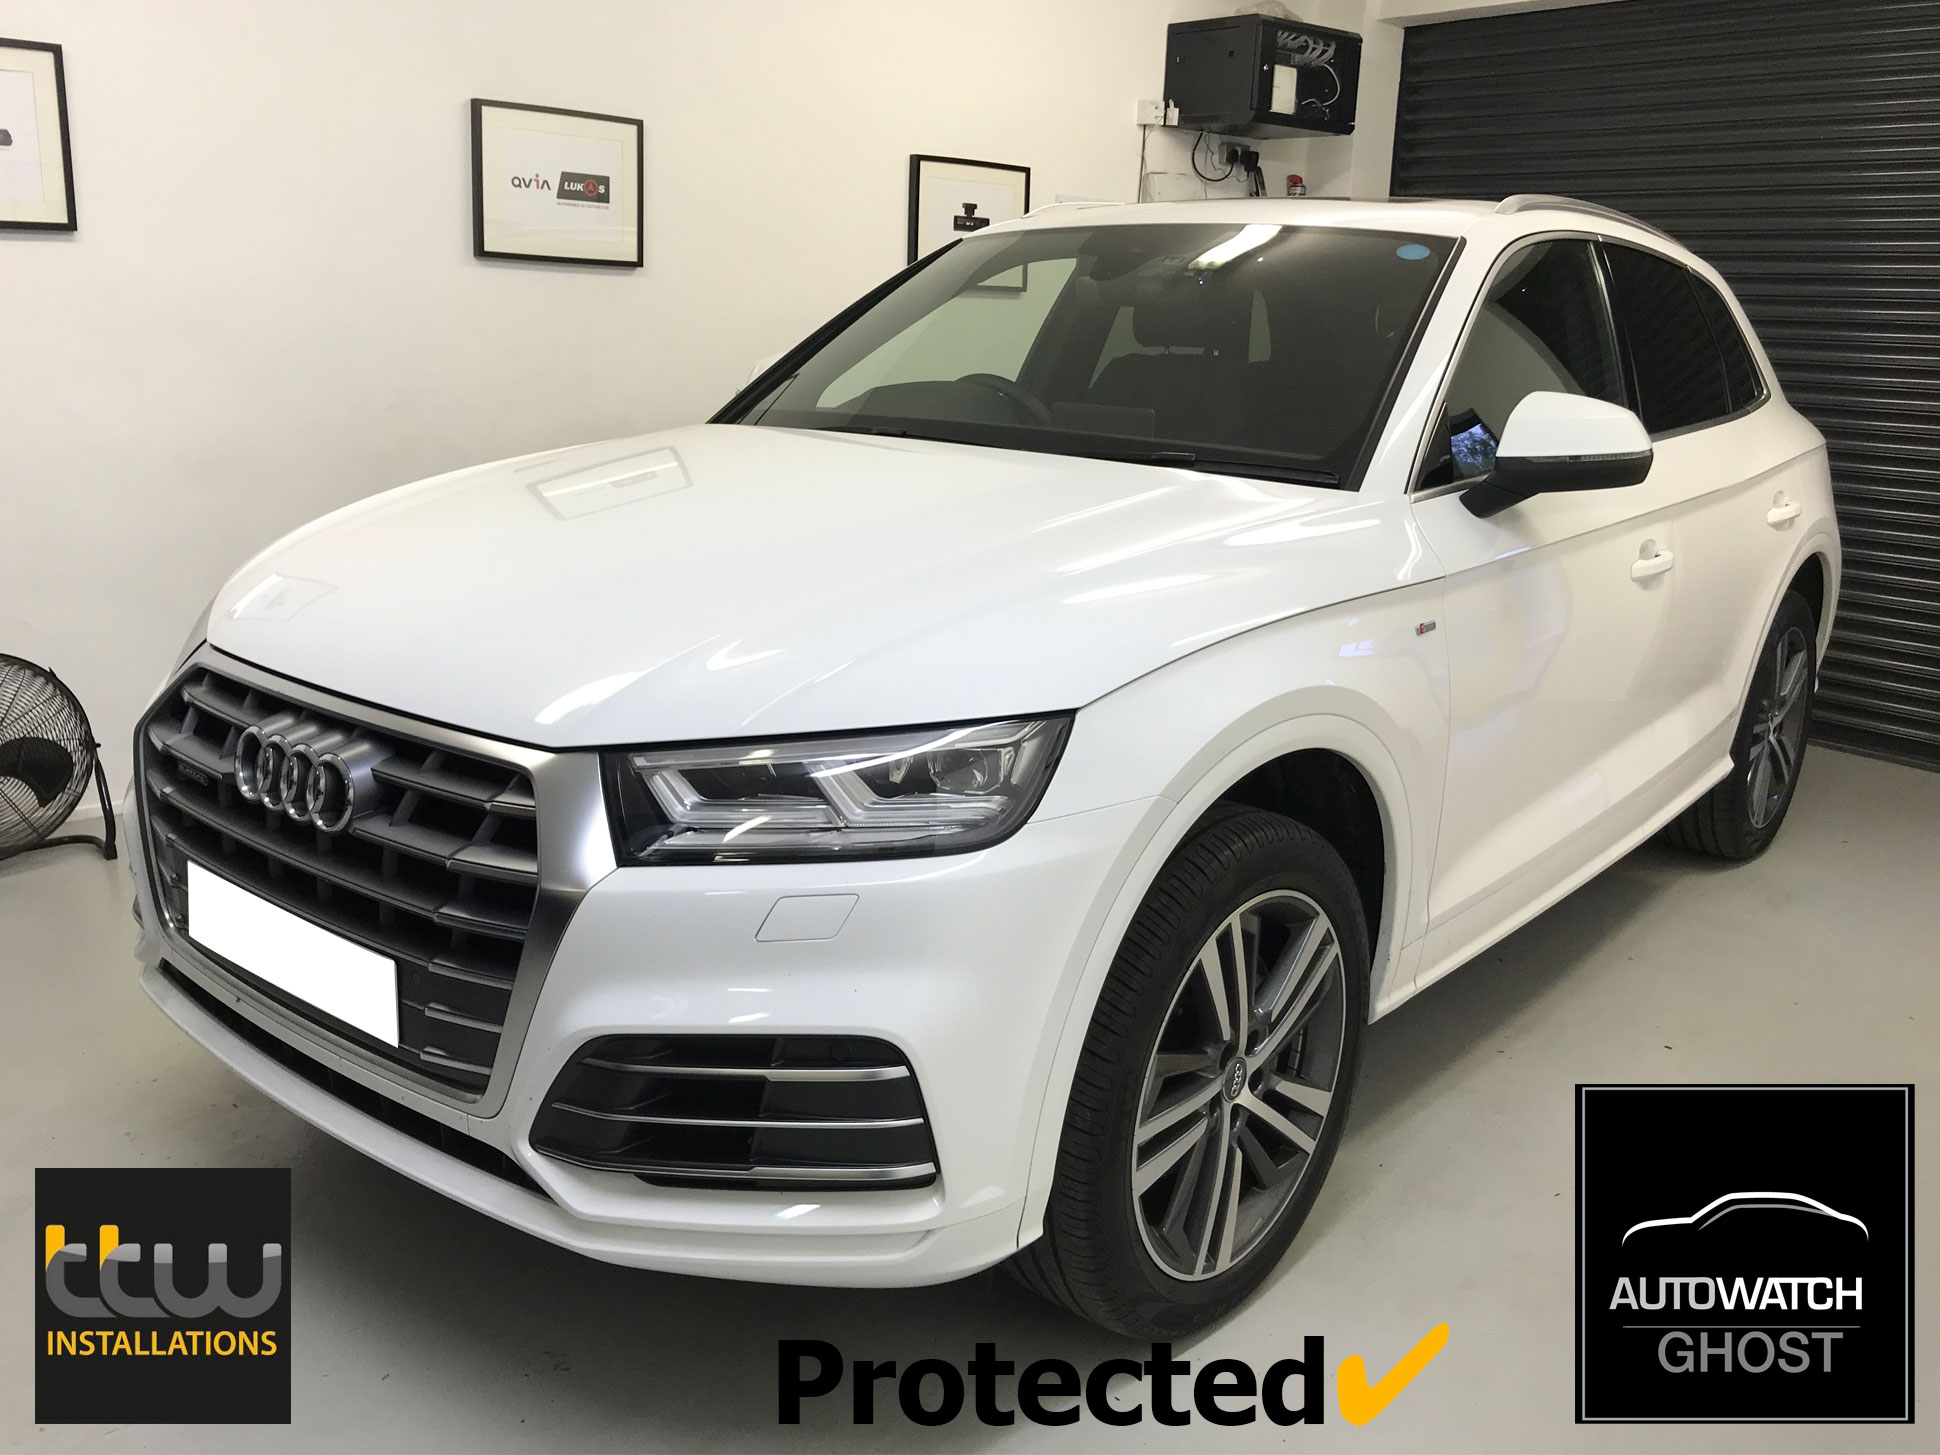 Audi Q8 Autowatch Ghost 2 protected By TTW Installations